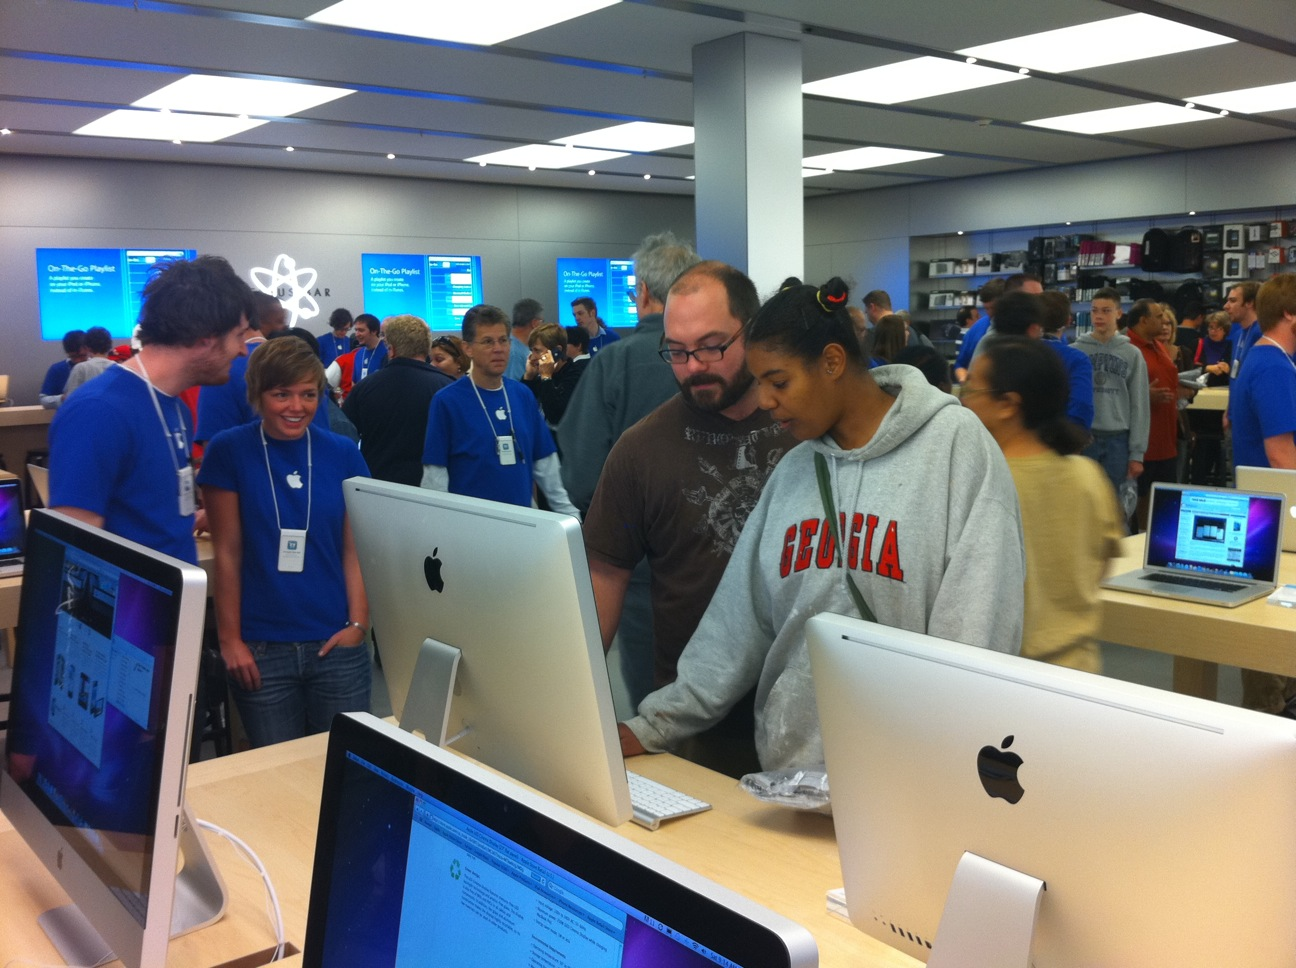 Apple Store Galleria - opening day